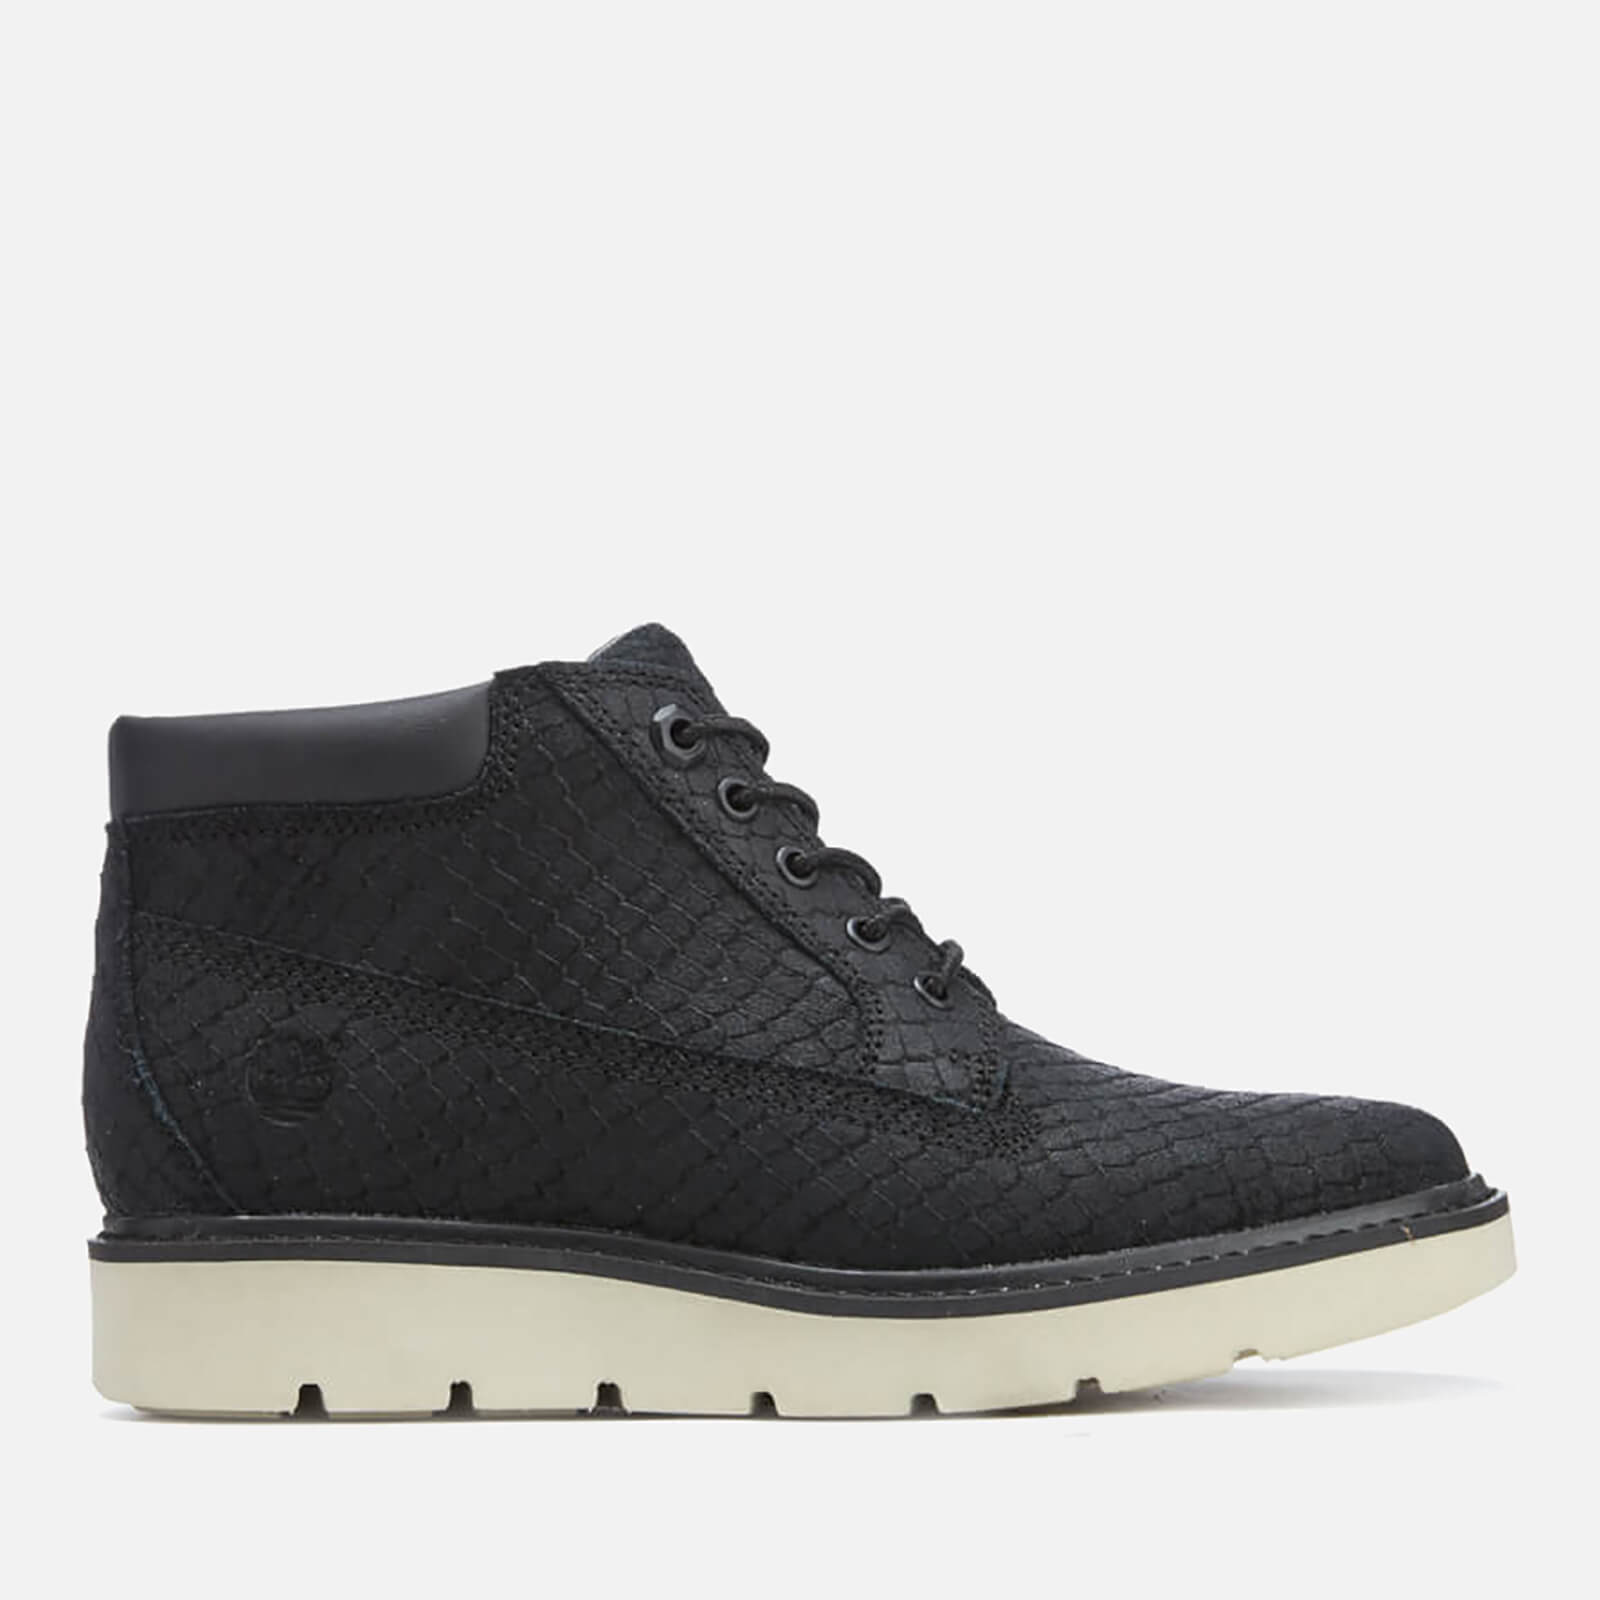 d24cc67227f Timberland Women's Kenniston Nellie Lace Up Boots - Black Snake